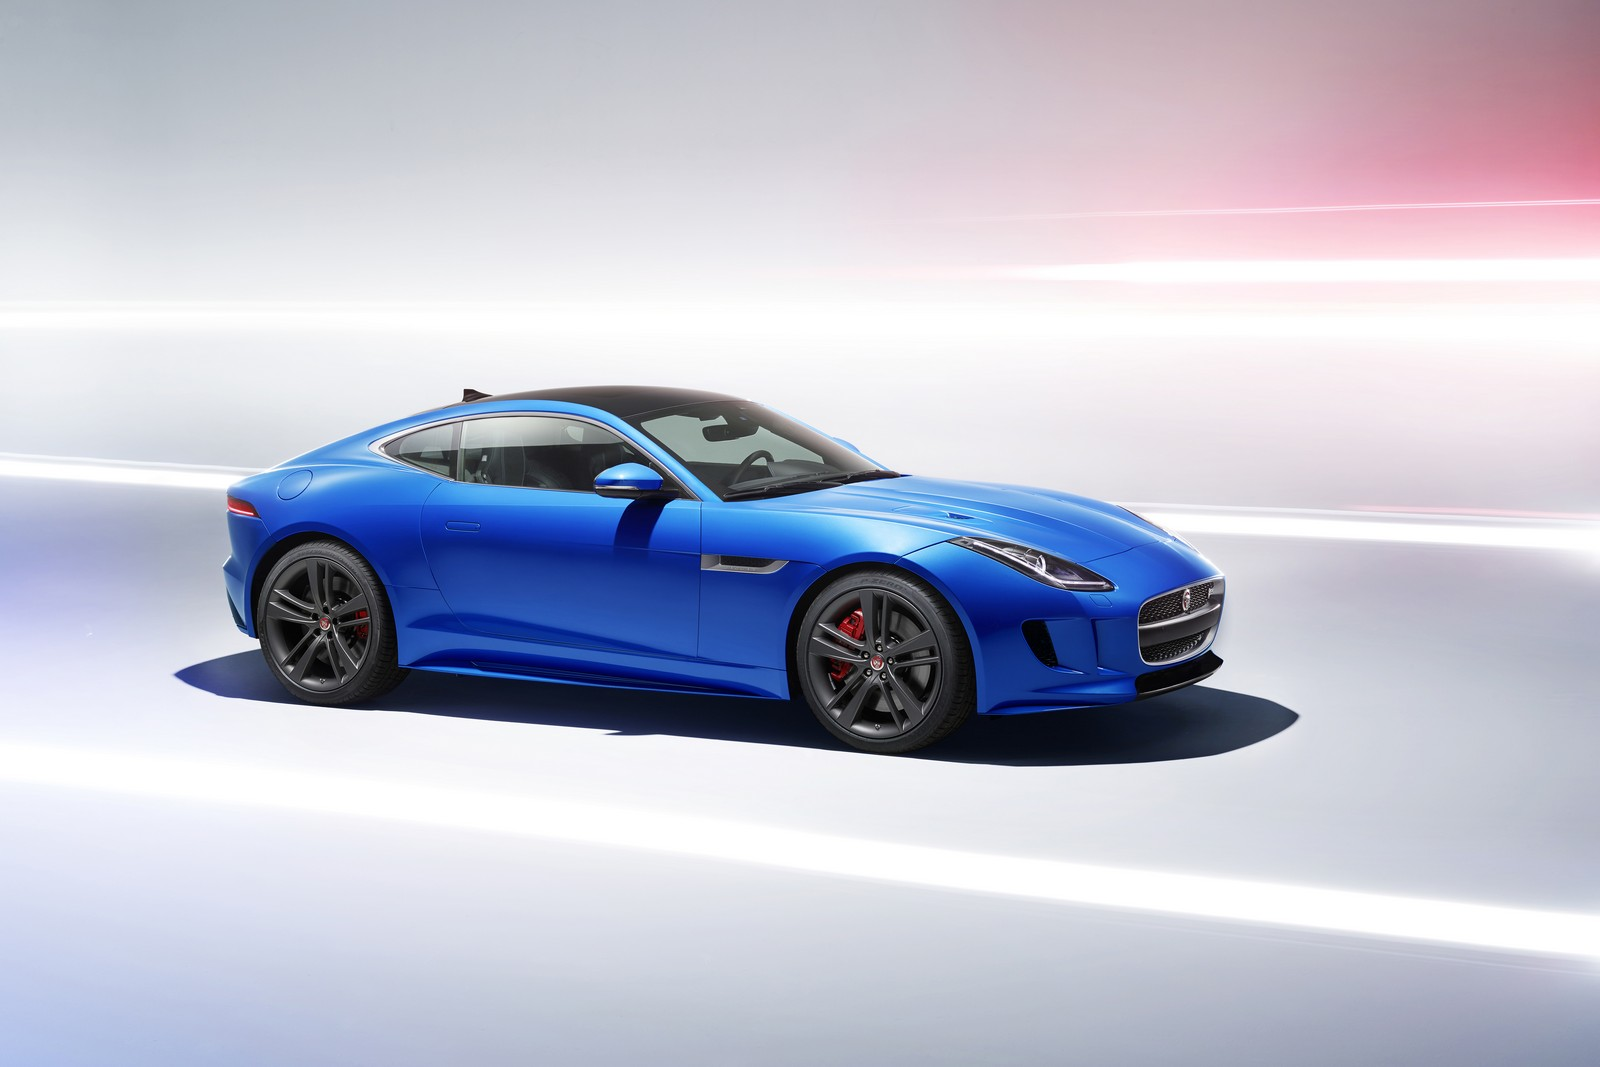 Представлен Jaguar F-Type British Design Edition